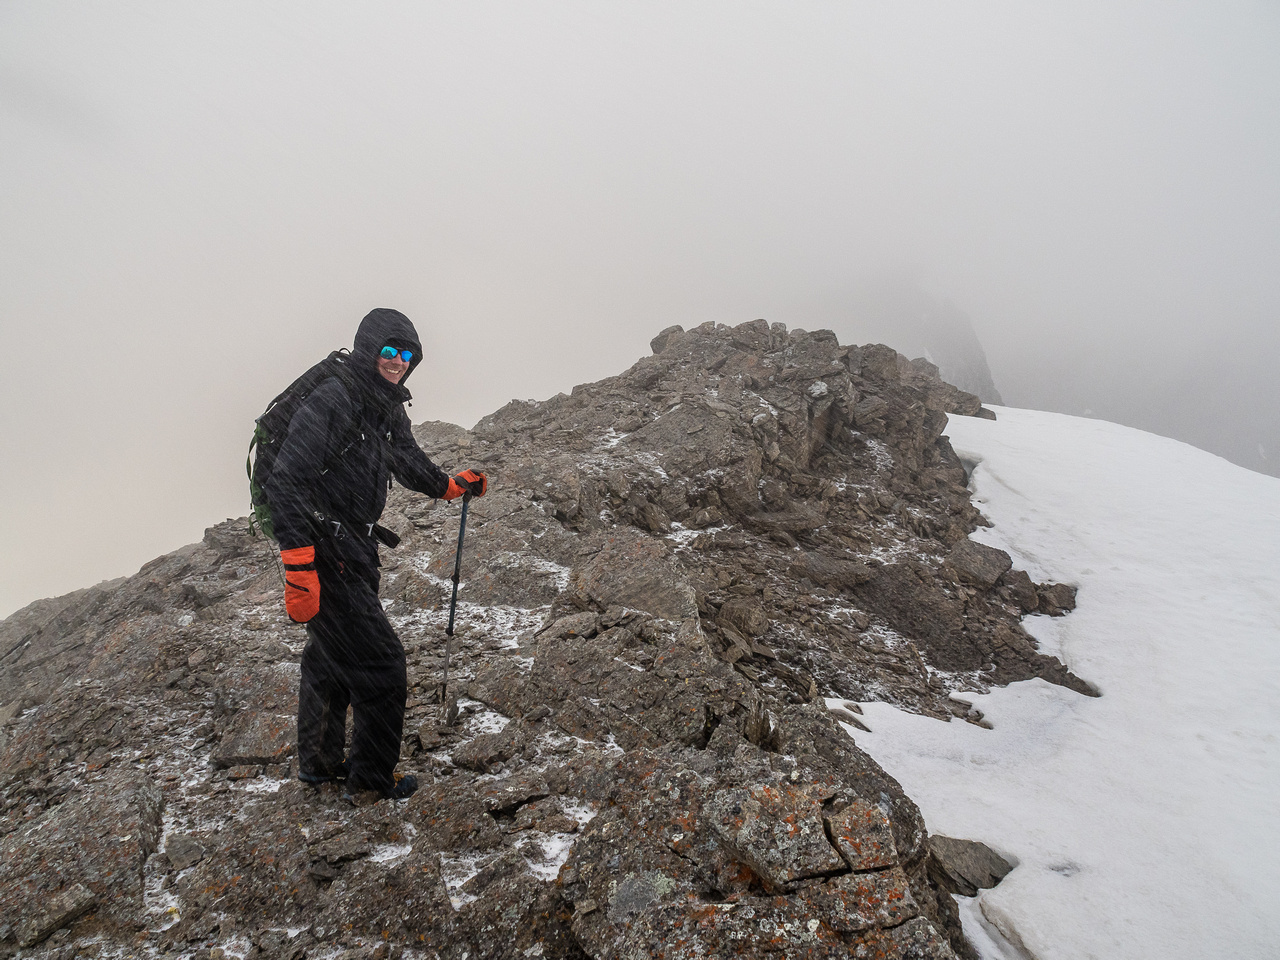 Phil is all smiles despite a snow storm at the end of June at 21:30 high on the Continental Divide.